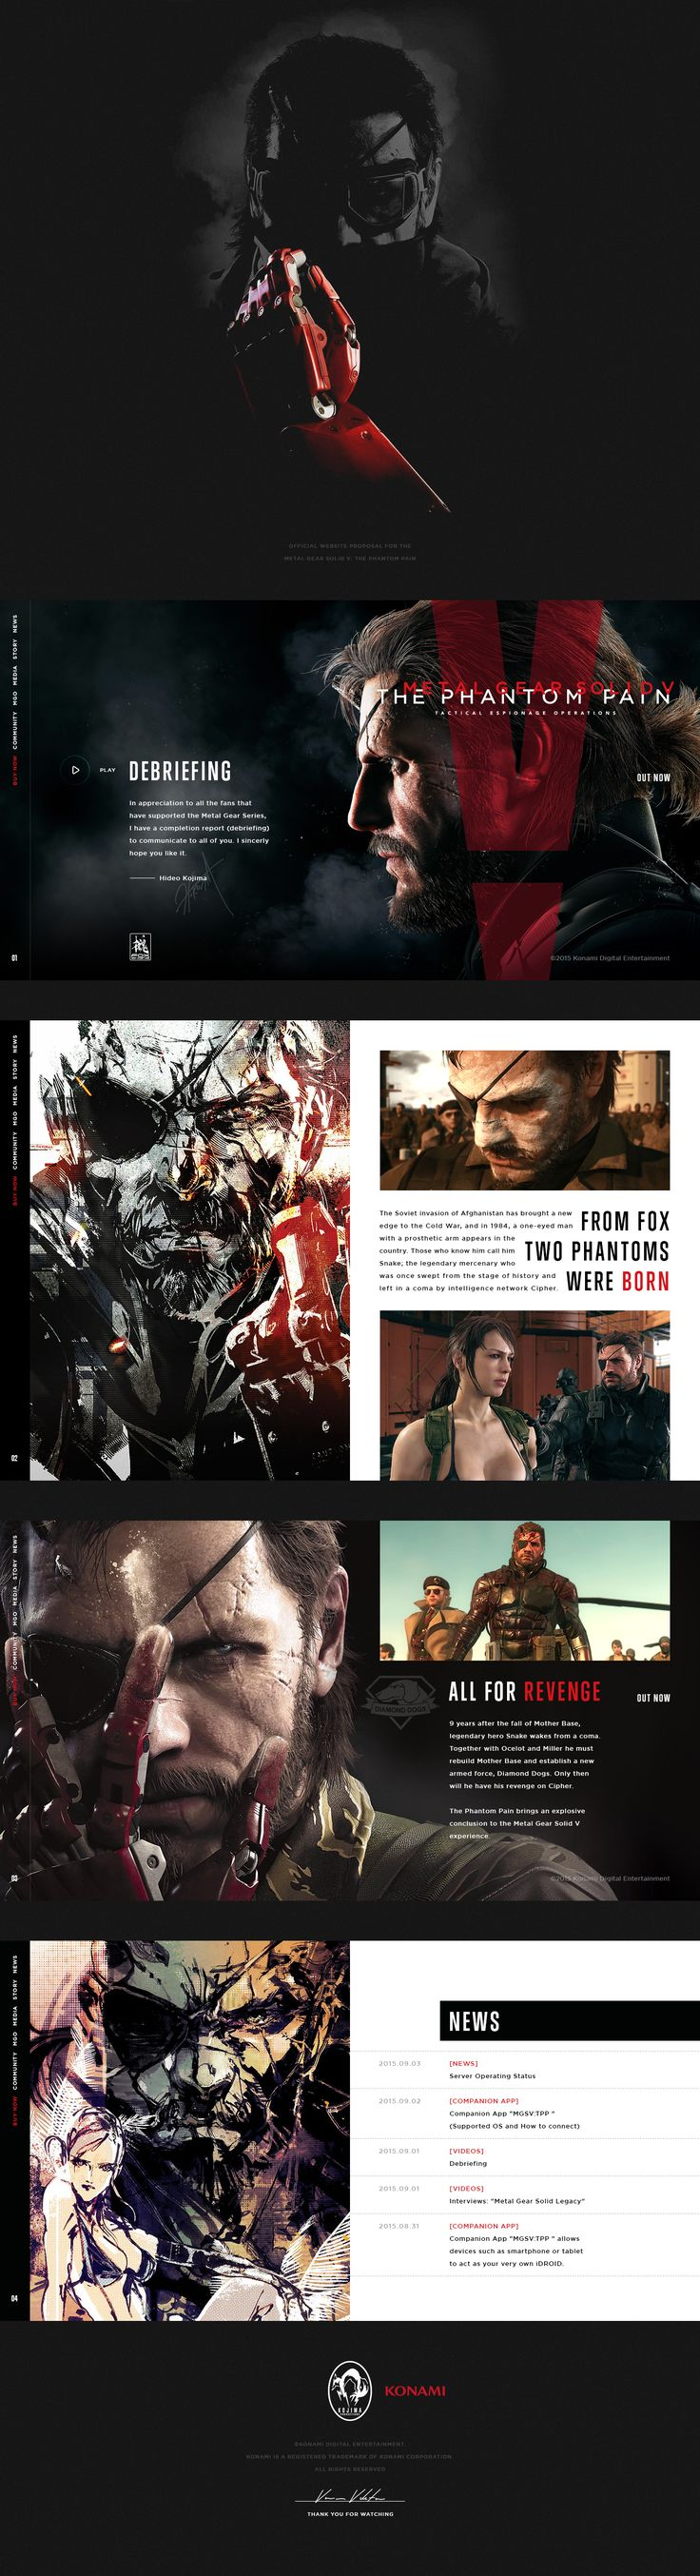 Metal gear solid v the phantom pain official website proposal hellowiktor